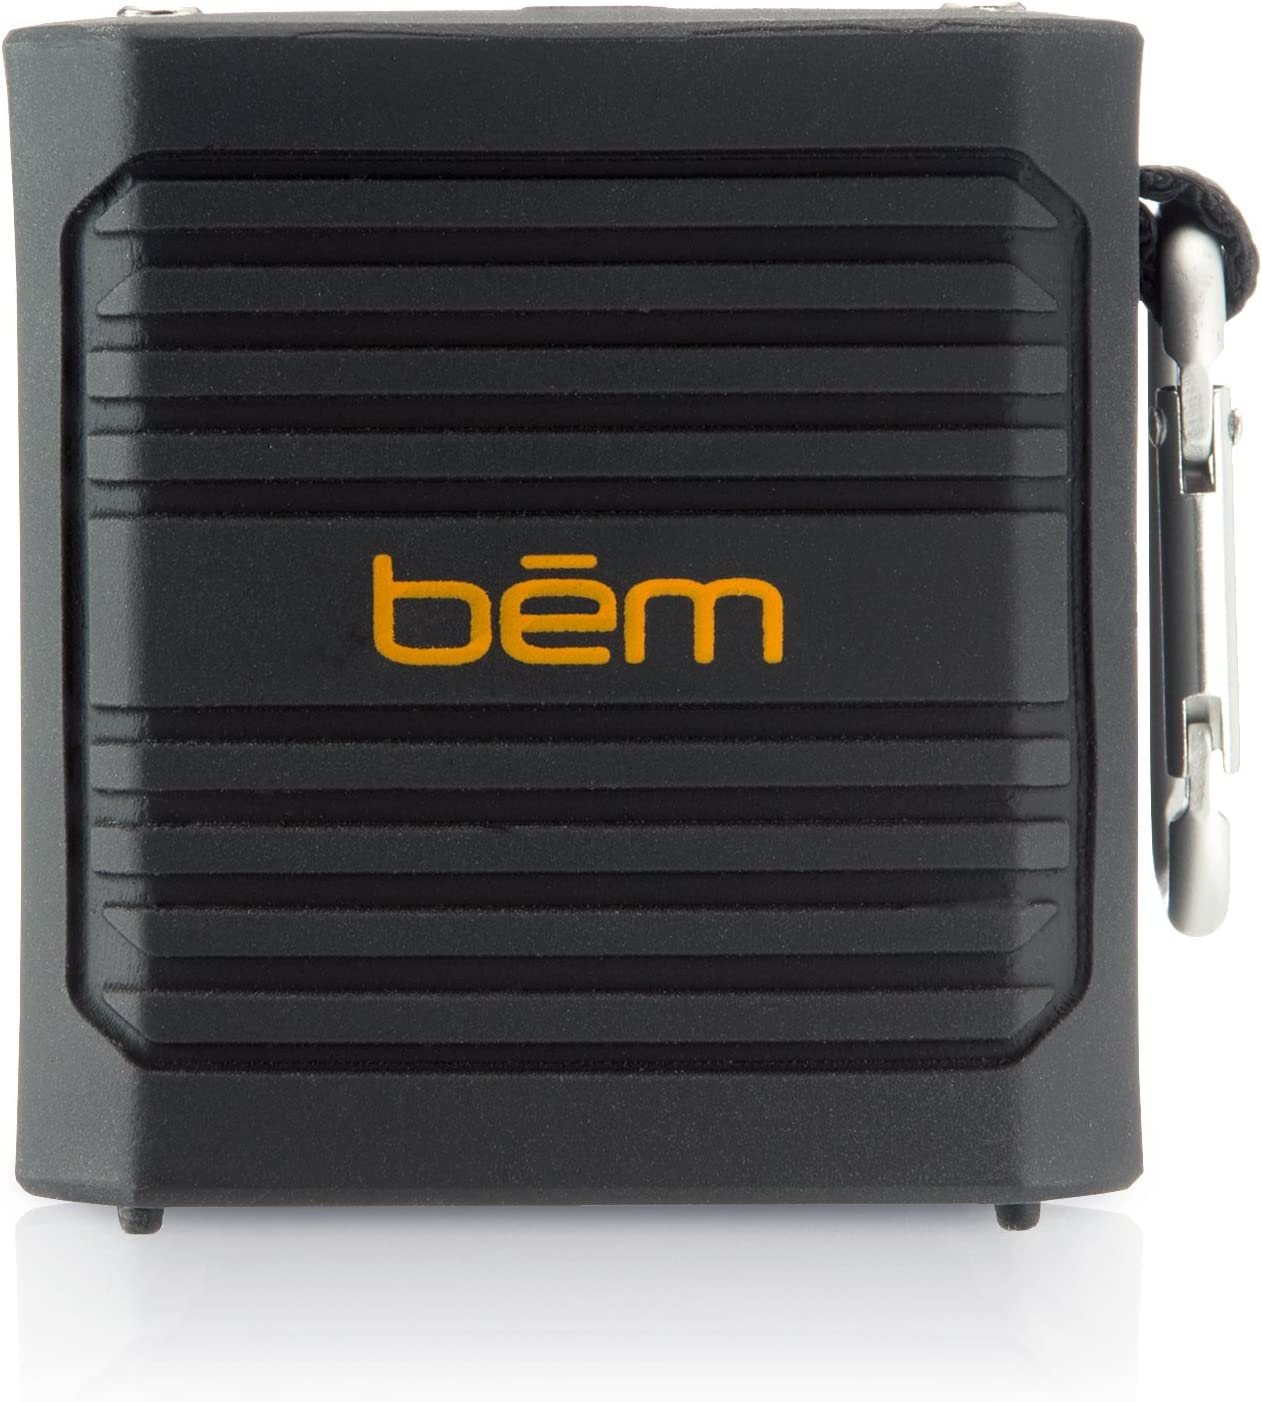 Waterproof Bem EXO-400 Bluetooth Speaker with Metal Clip for Outdoor Enthusiasts Rugged